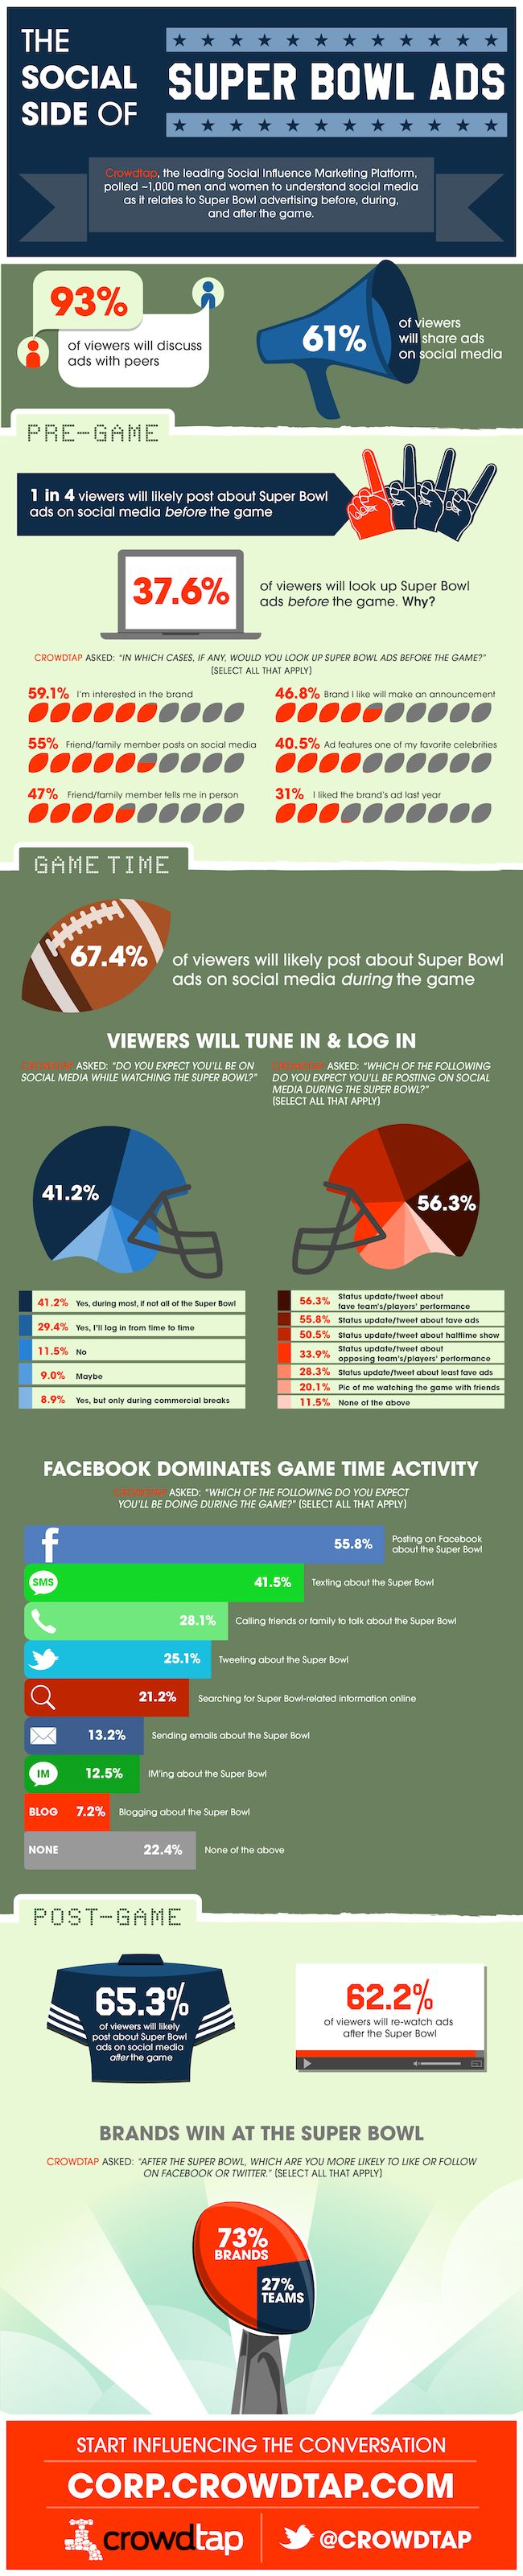 INFOGRAPHIC: Facebook vs Twitter - the social side of Super Bowl ads.